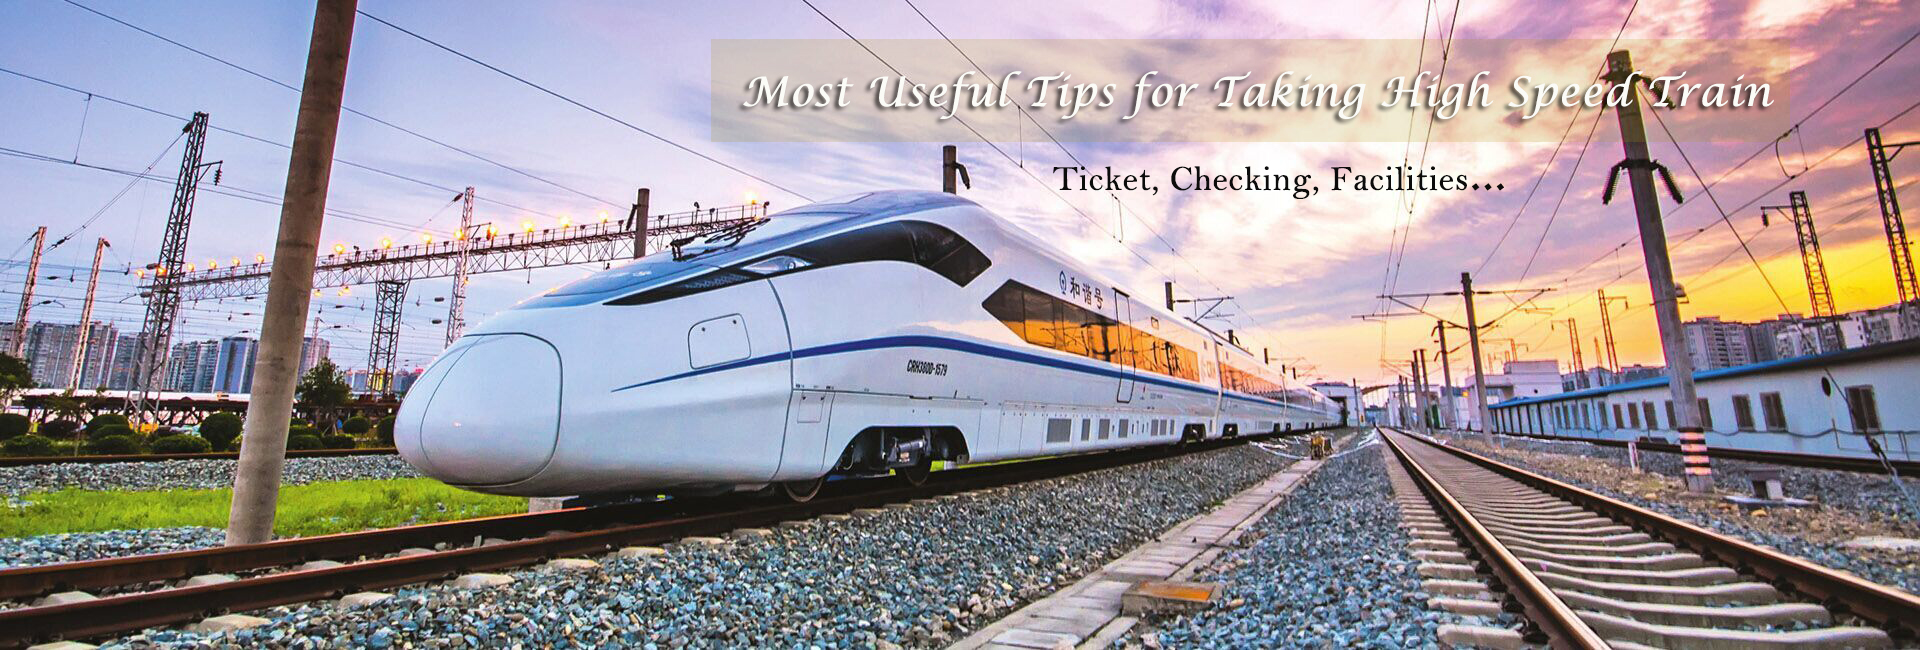 Most Useful Tips for Taking China Train2019